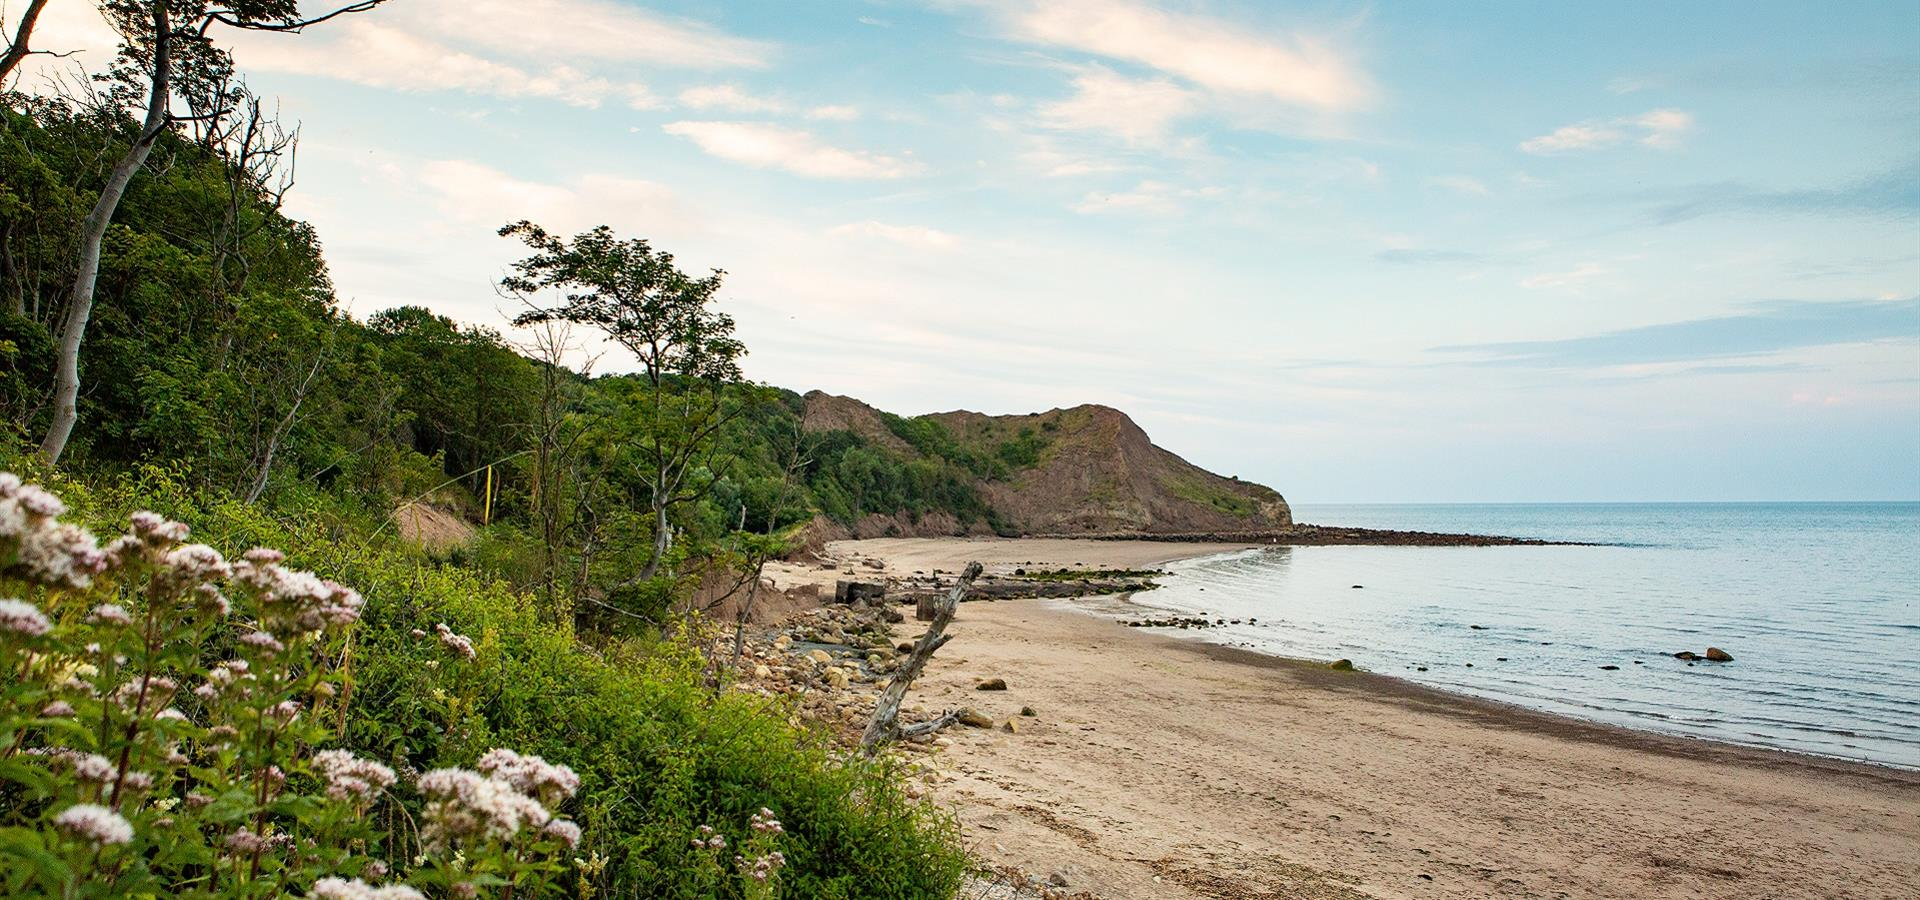 An image of Cayton Bay, by Duncan Lomax